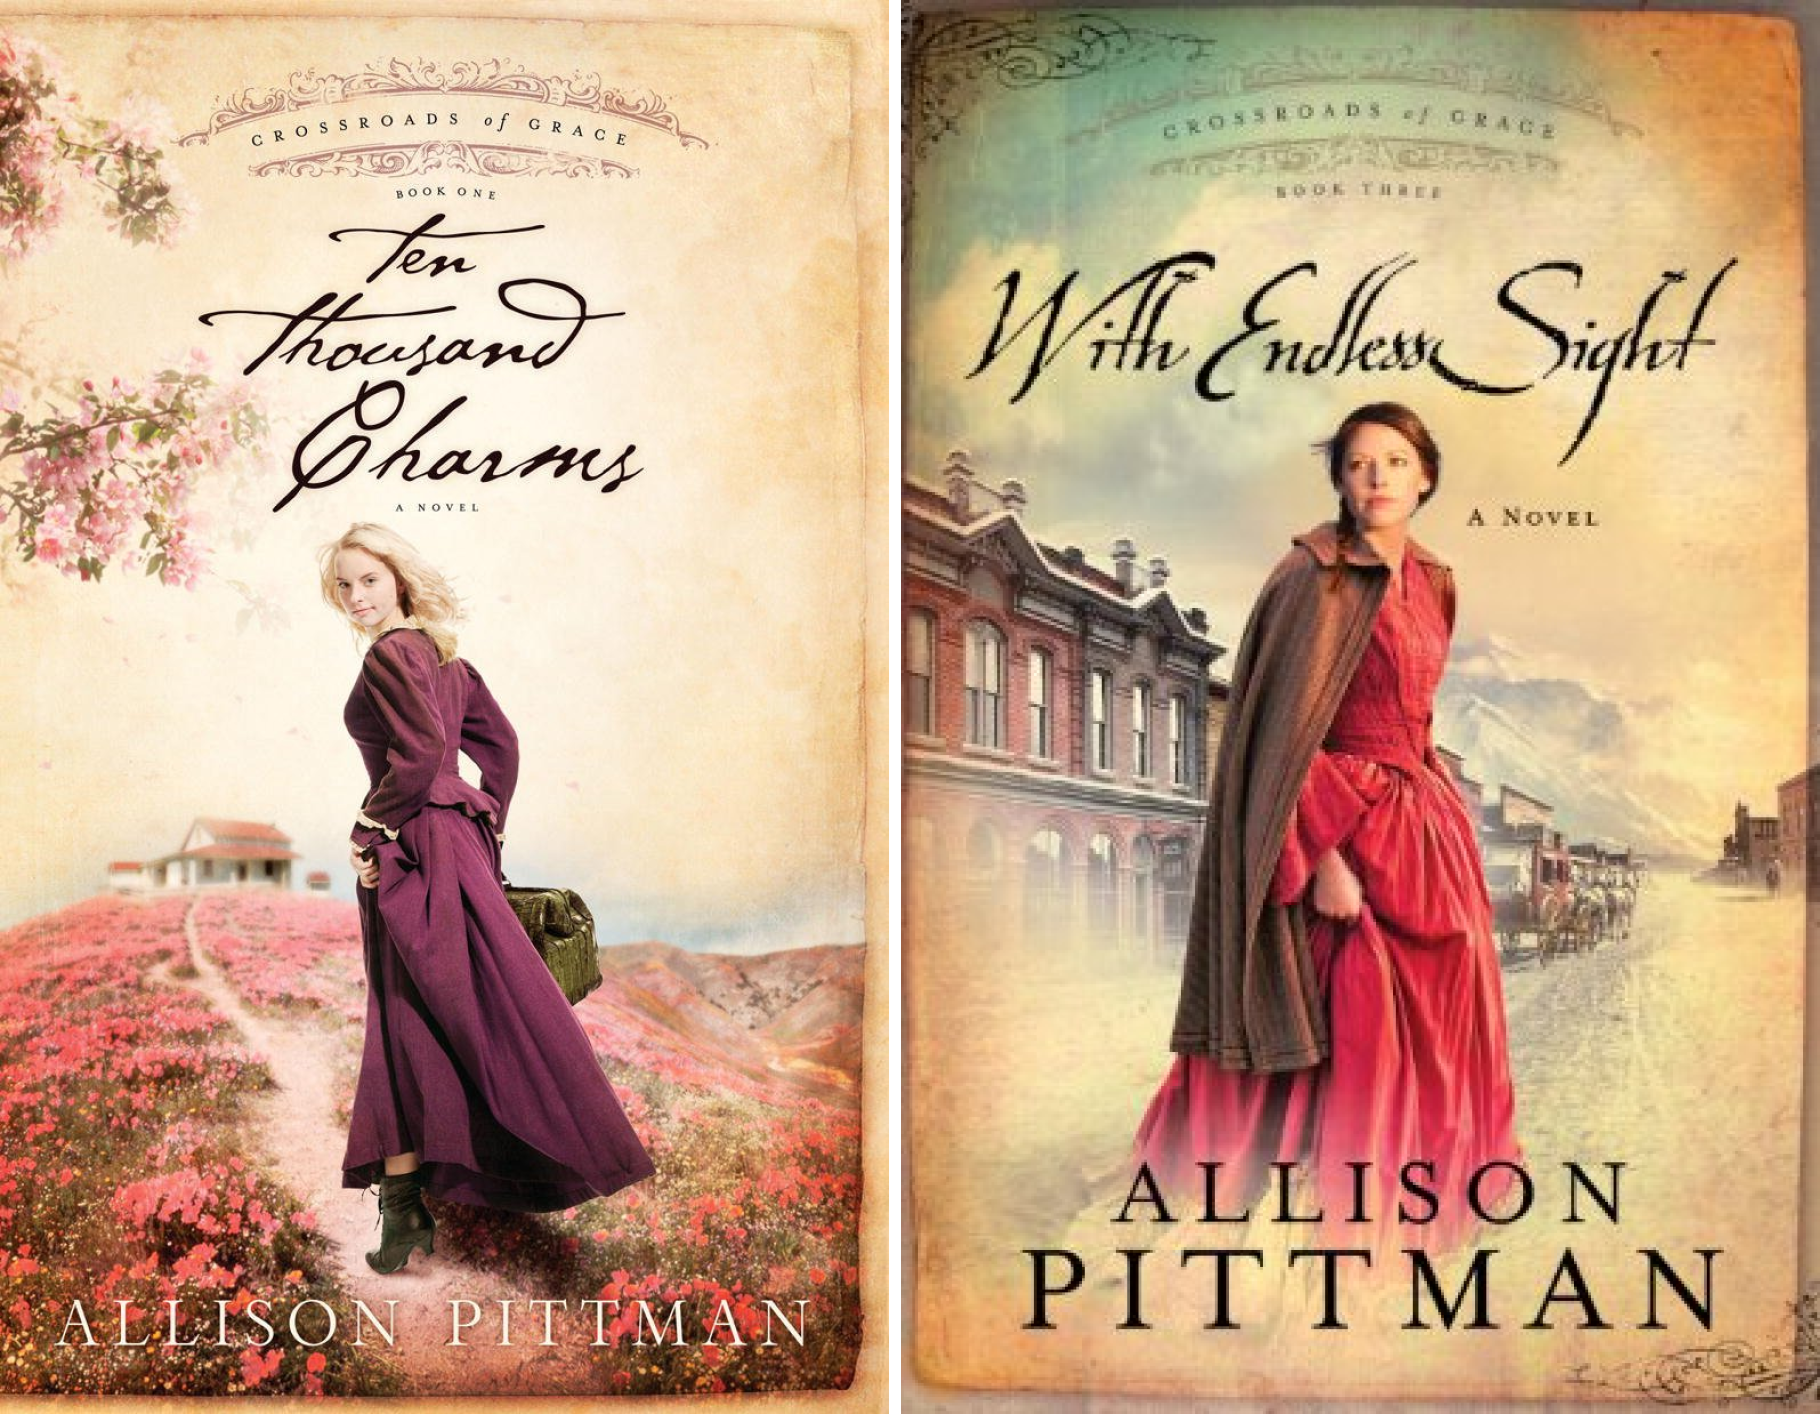 Crossroads of Grace (3 Book Series)